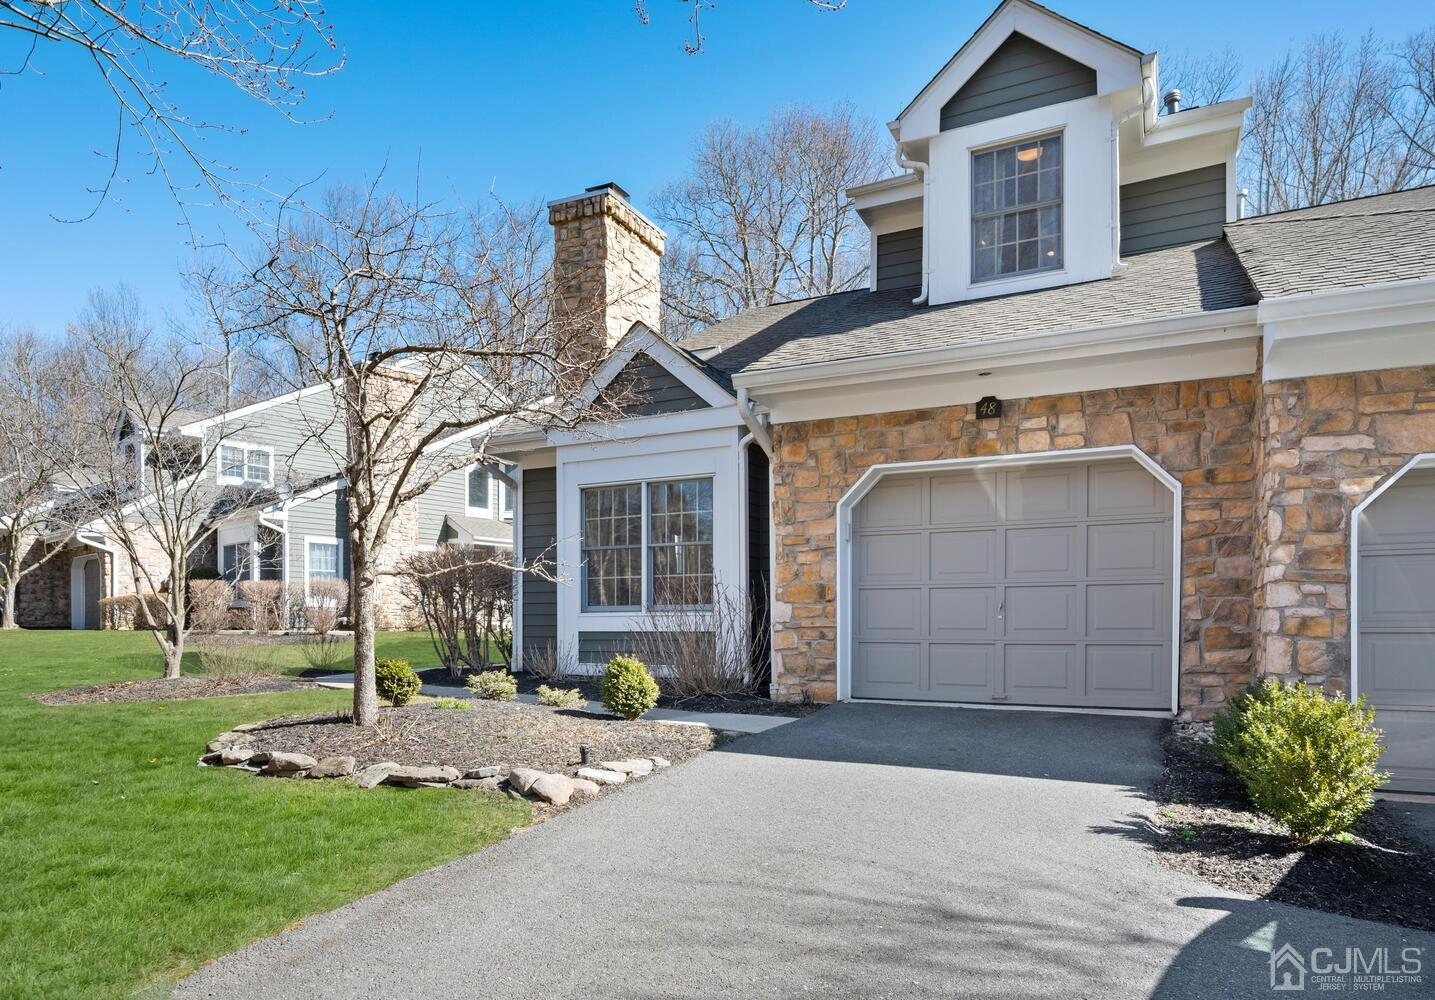 48 Coriander Drive , South Brunswick, NJ 08540